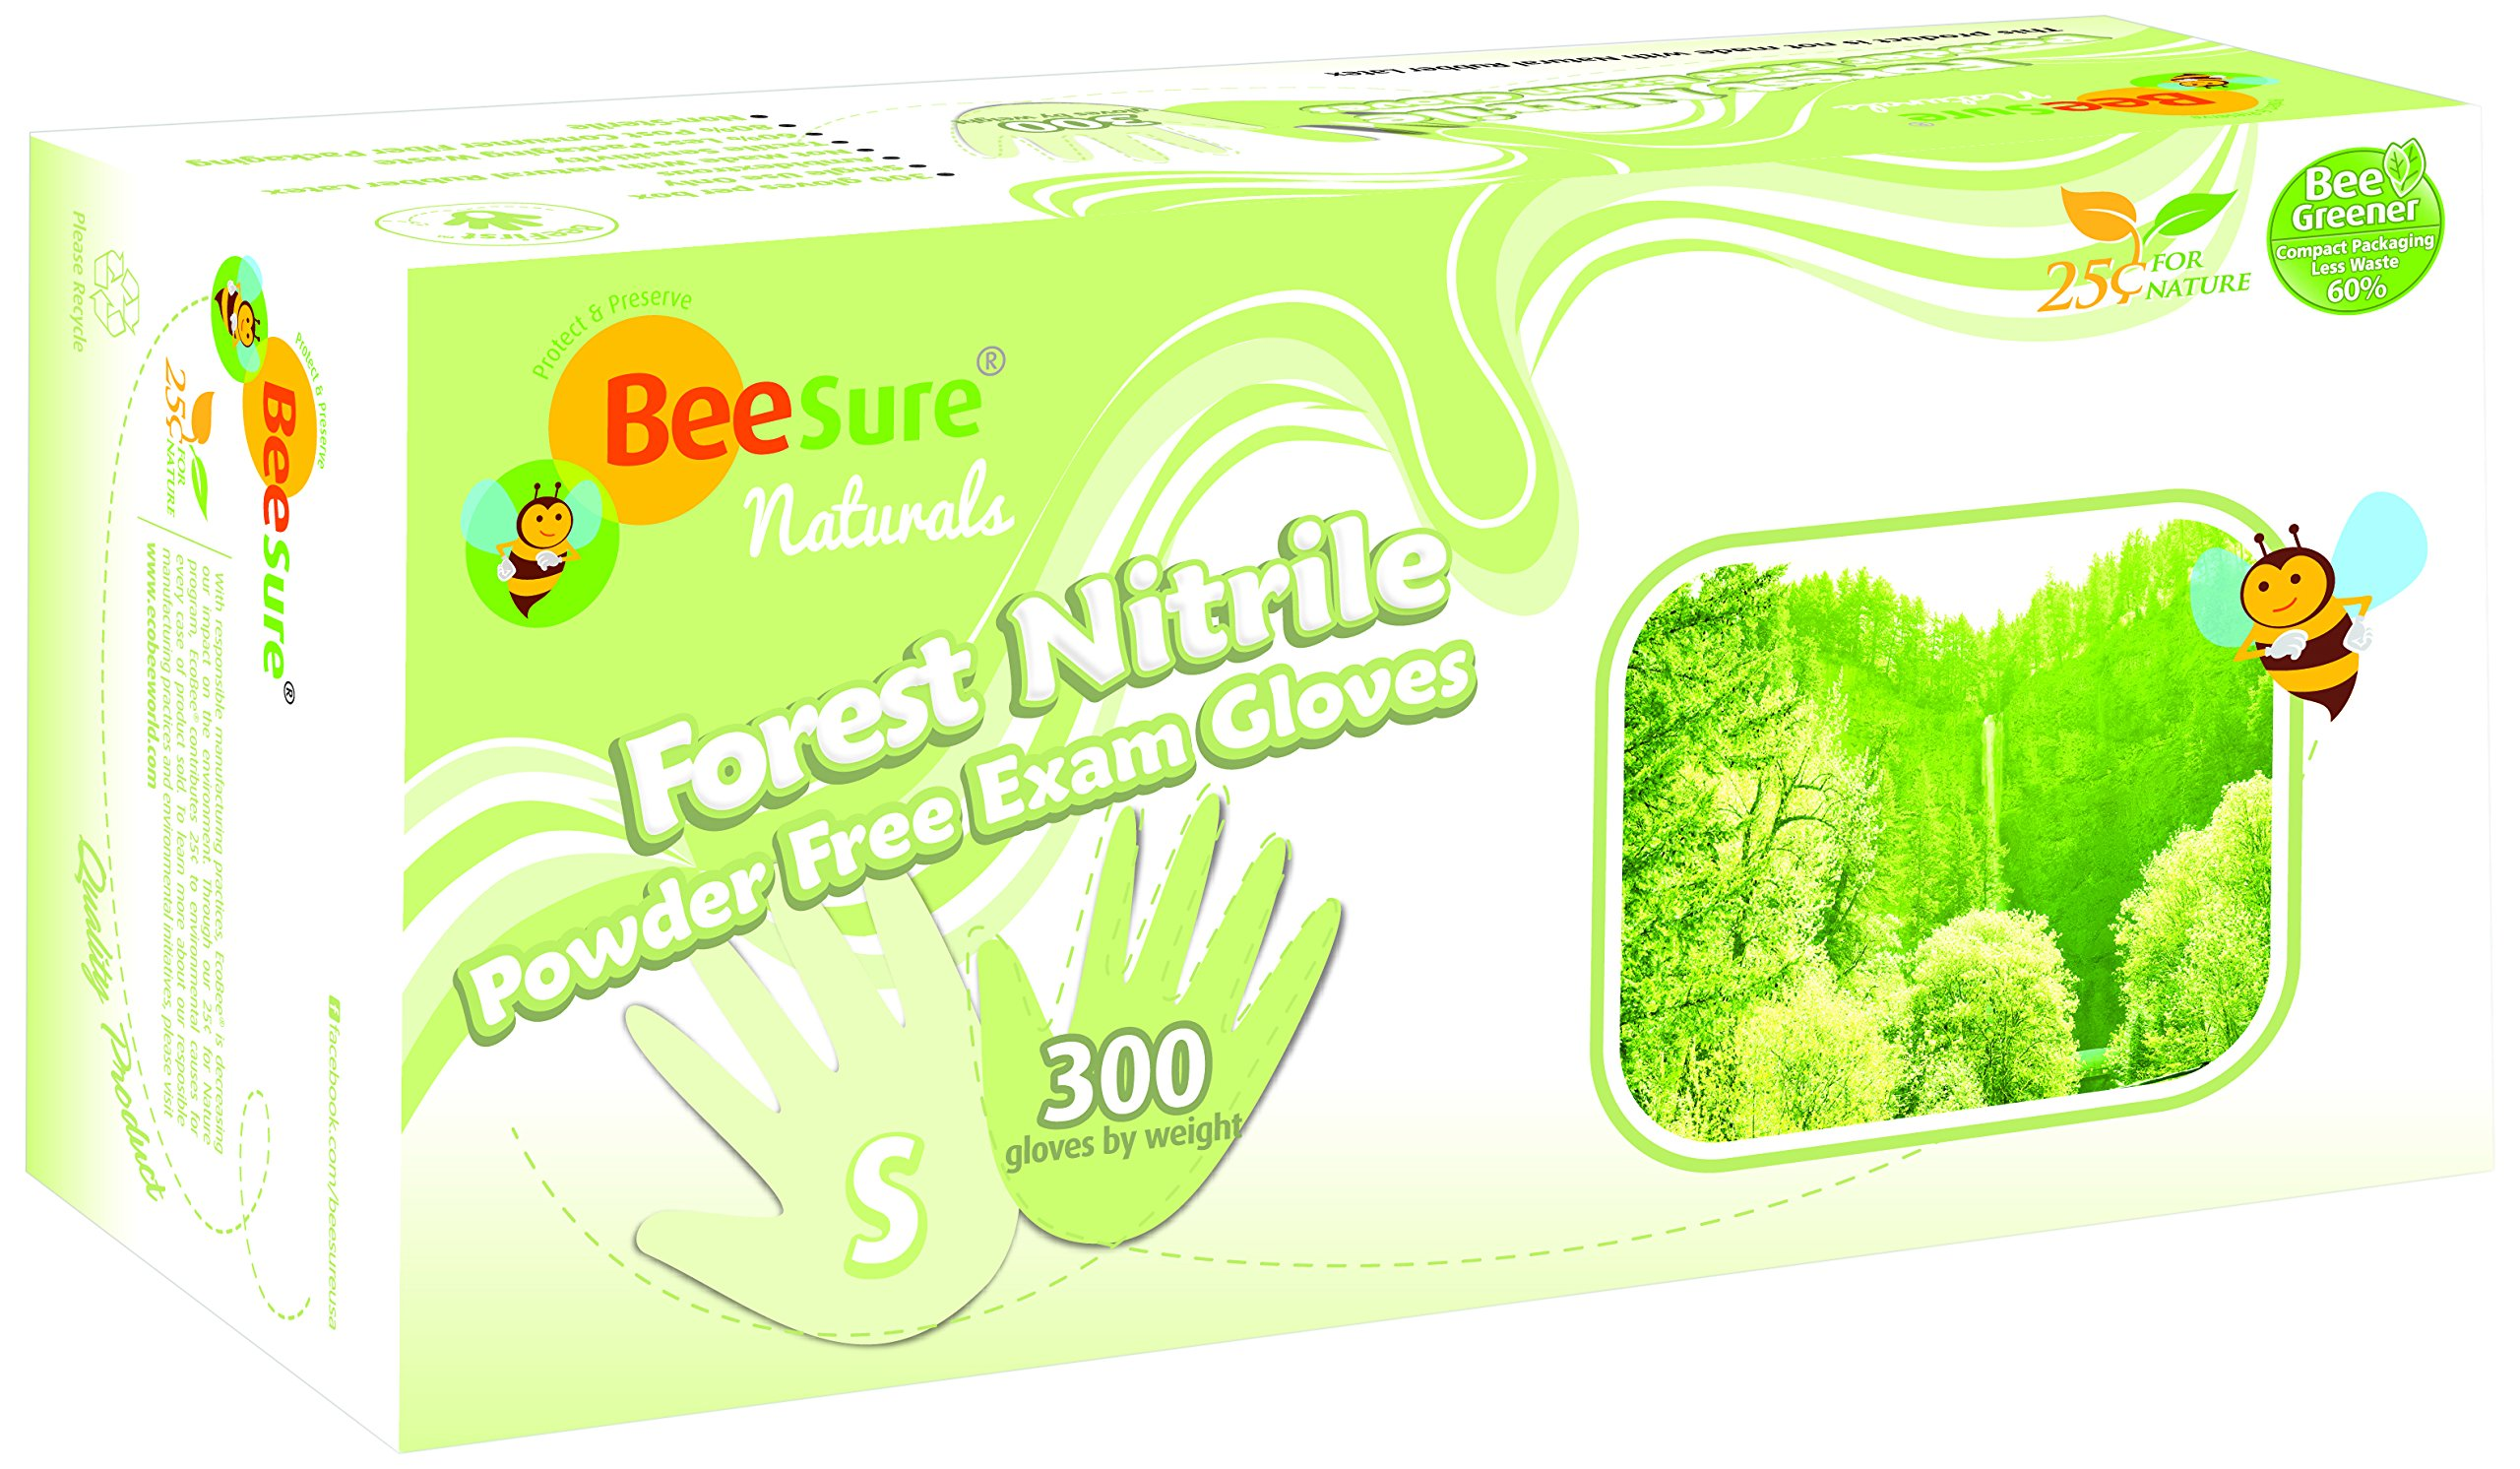 BeeSure BE2946case Naturals Forest Exam Gloves, Powder Free, Nitrile, Beaded-Cuff, Small, Green (Pack of 3000) by BeeSure (Image #1)